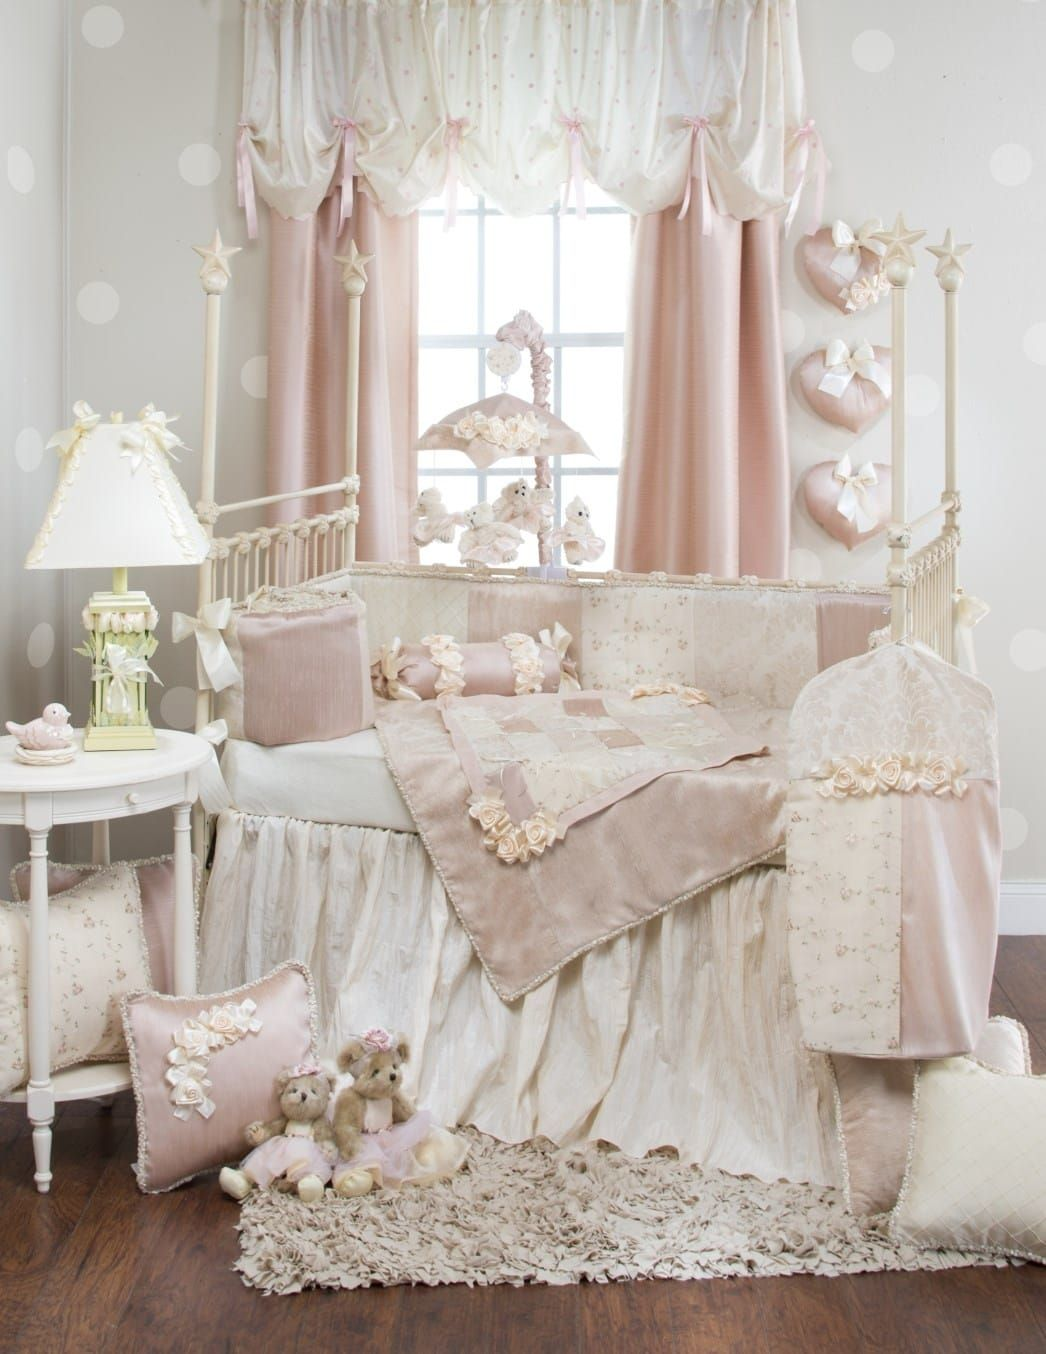 ultra feminine bedding bed bath and beyond hours  bedding  - ultra feminine bedding bed bath and beyond hours